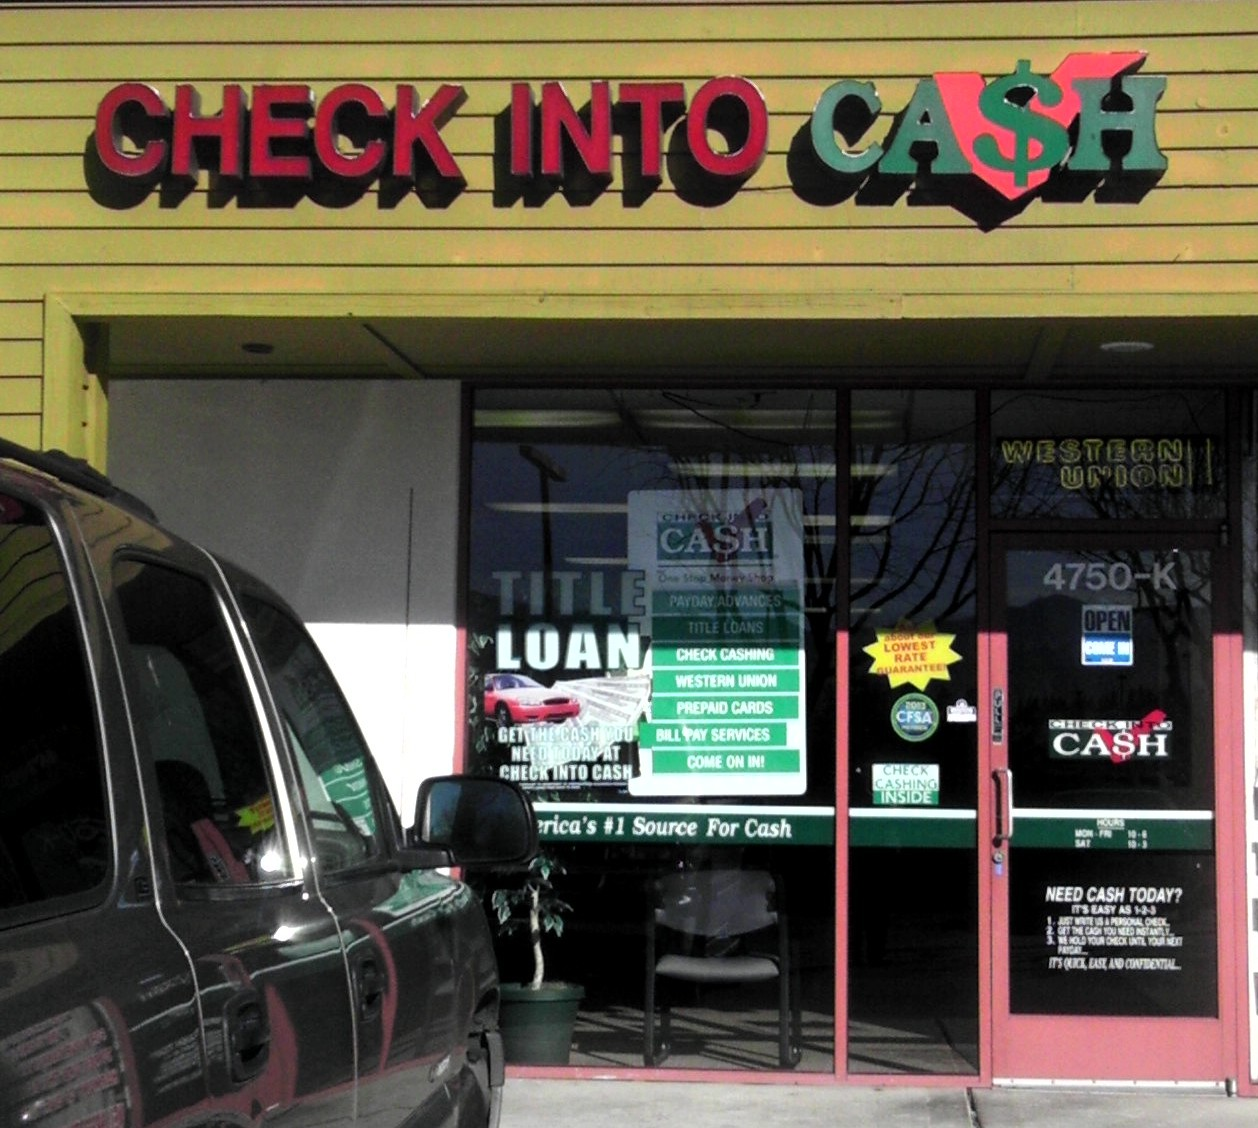 Cash advance fees in dts image 2